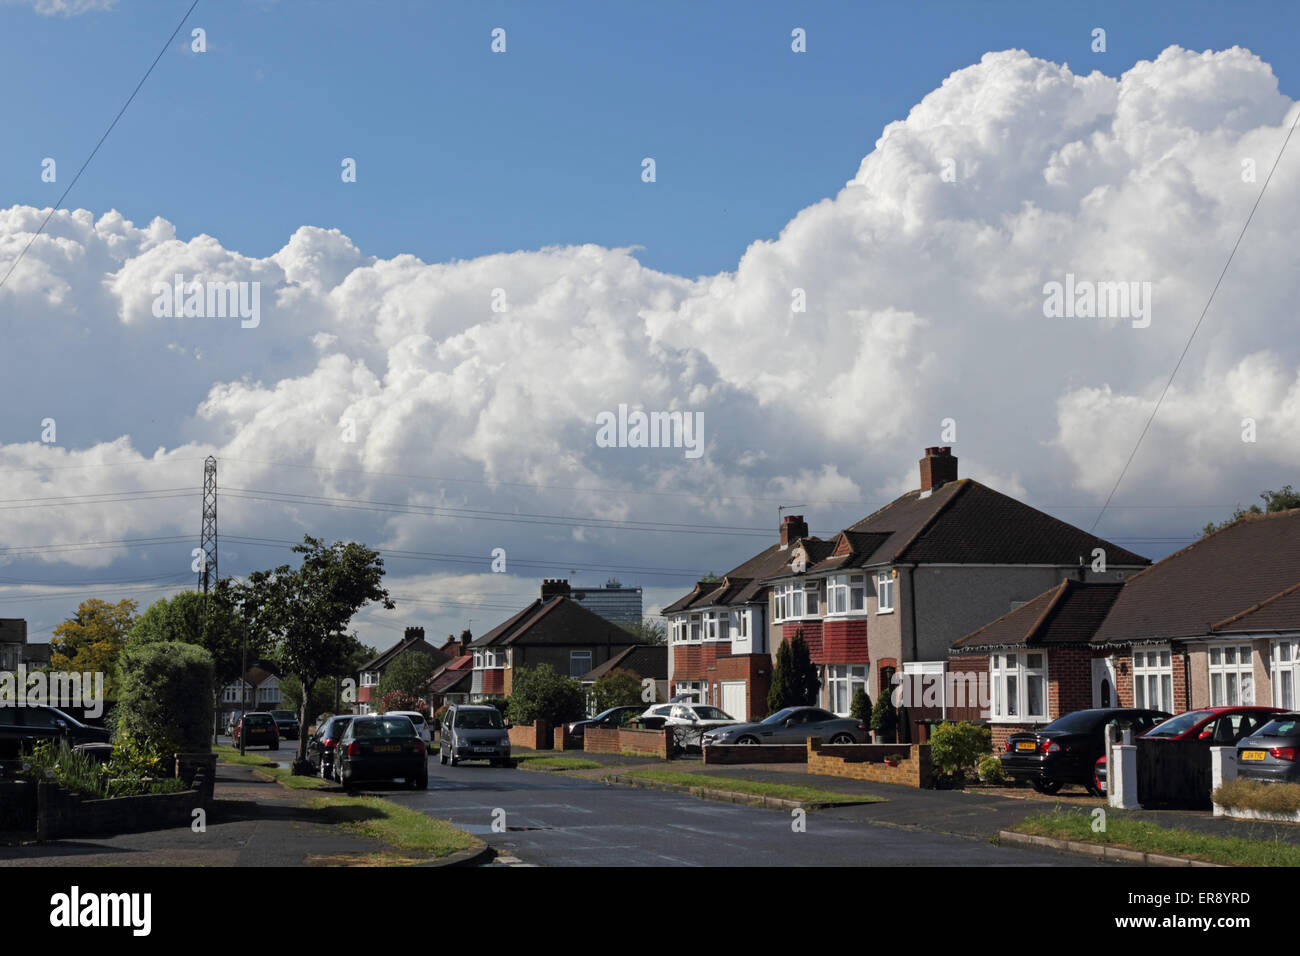 Epsom Surrey England. 29th May 2015. On a day of rain, followed by sunshine and showers, towering cumulonimbus storm - Stock Image